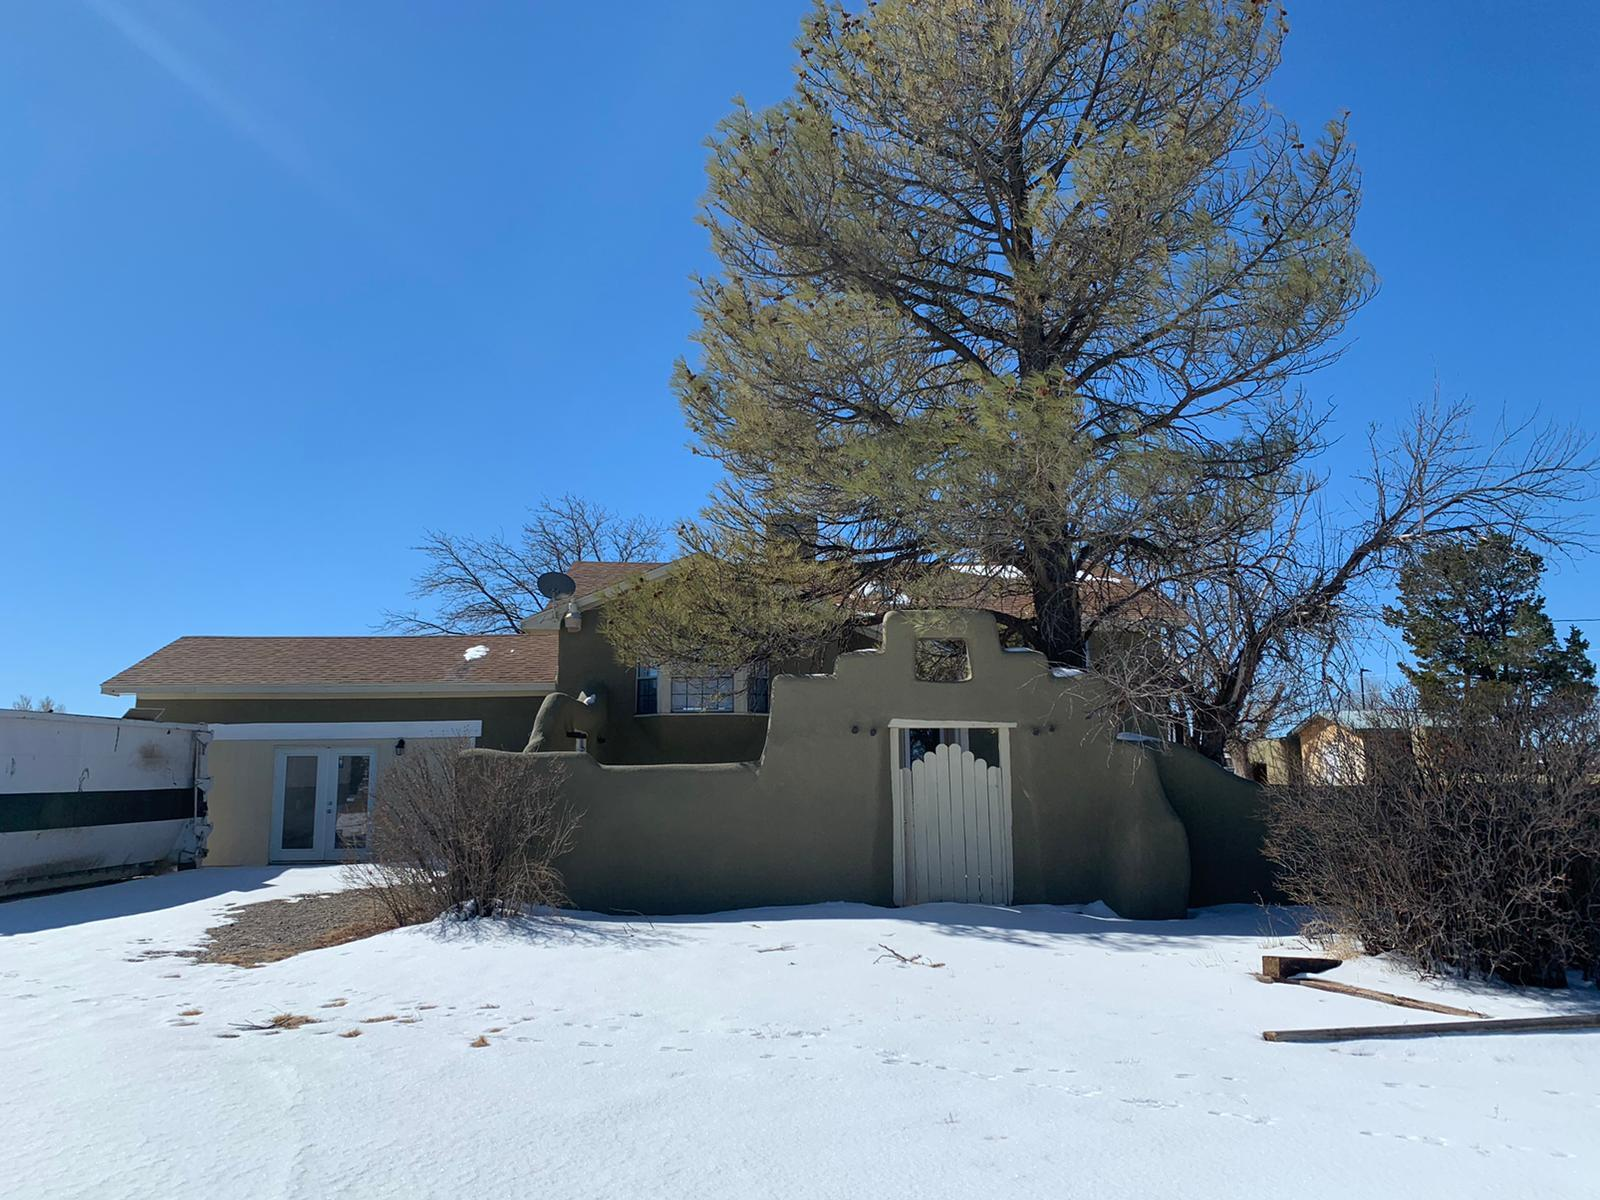 Custom home on Route 66!  Spacious tri-level with converted garage,  Greaty Room with beamed celings and cozy fireplace, separate dining area.  Open kitchen with brand new stainless steel appliances.  New carpet, paint and fixtures.  Large lot (approx 1 acre)  wrap around deck!